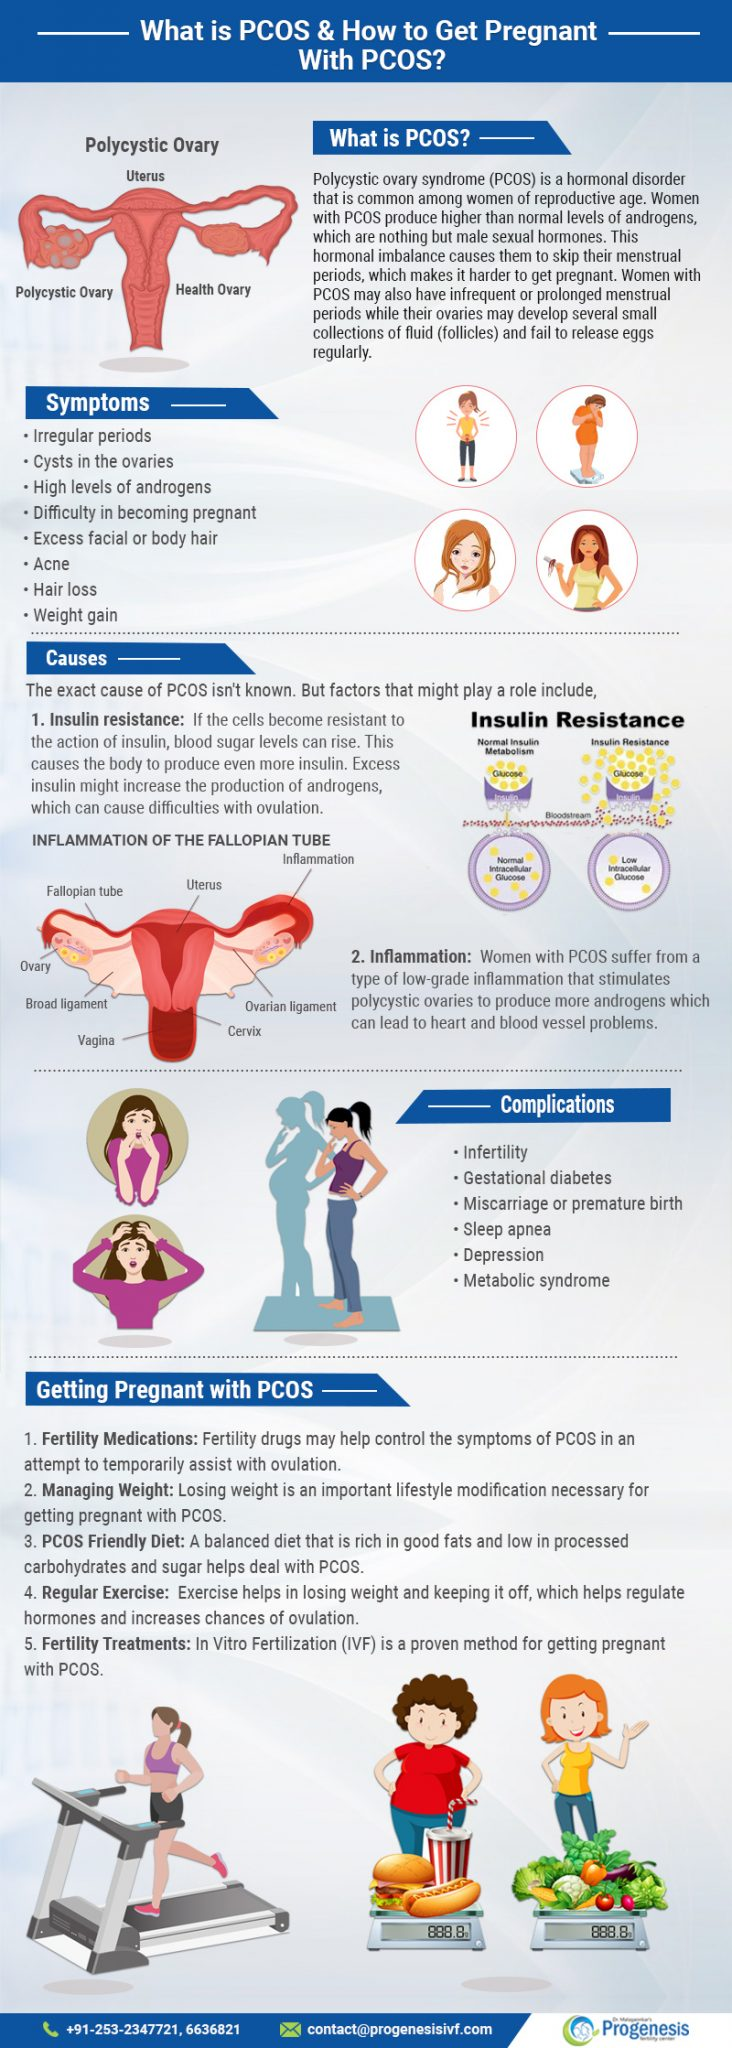 What is PCOS? How to get pregnant with PCOS?